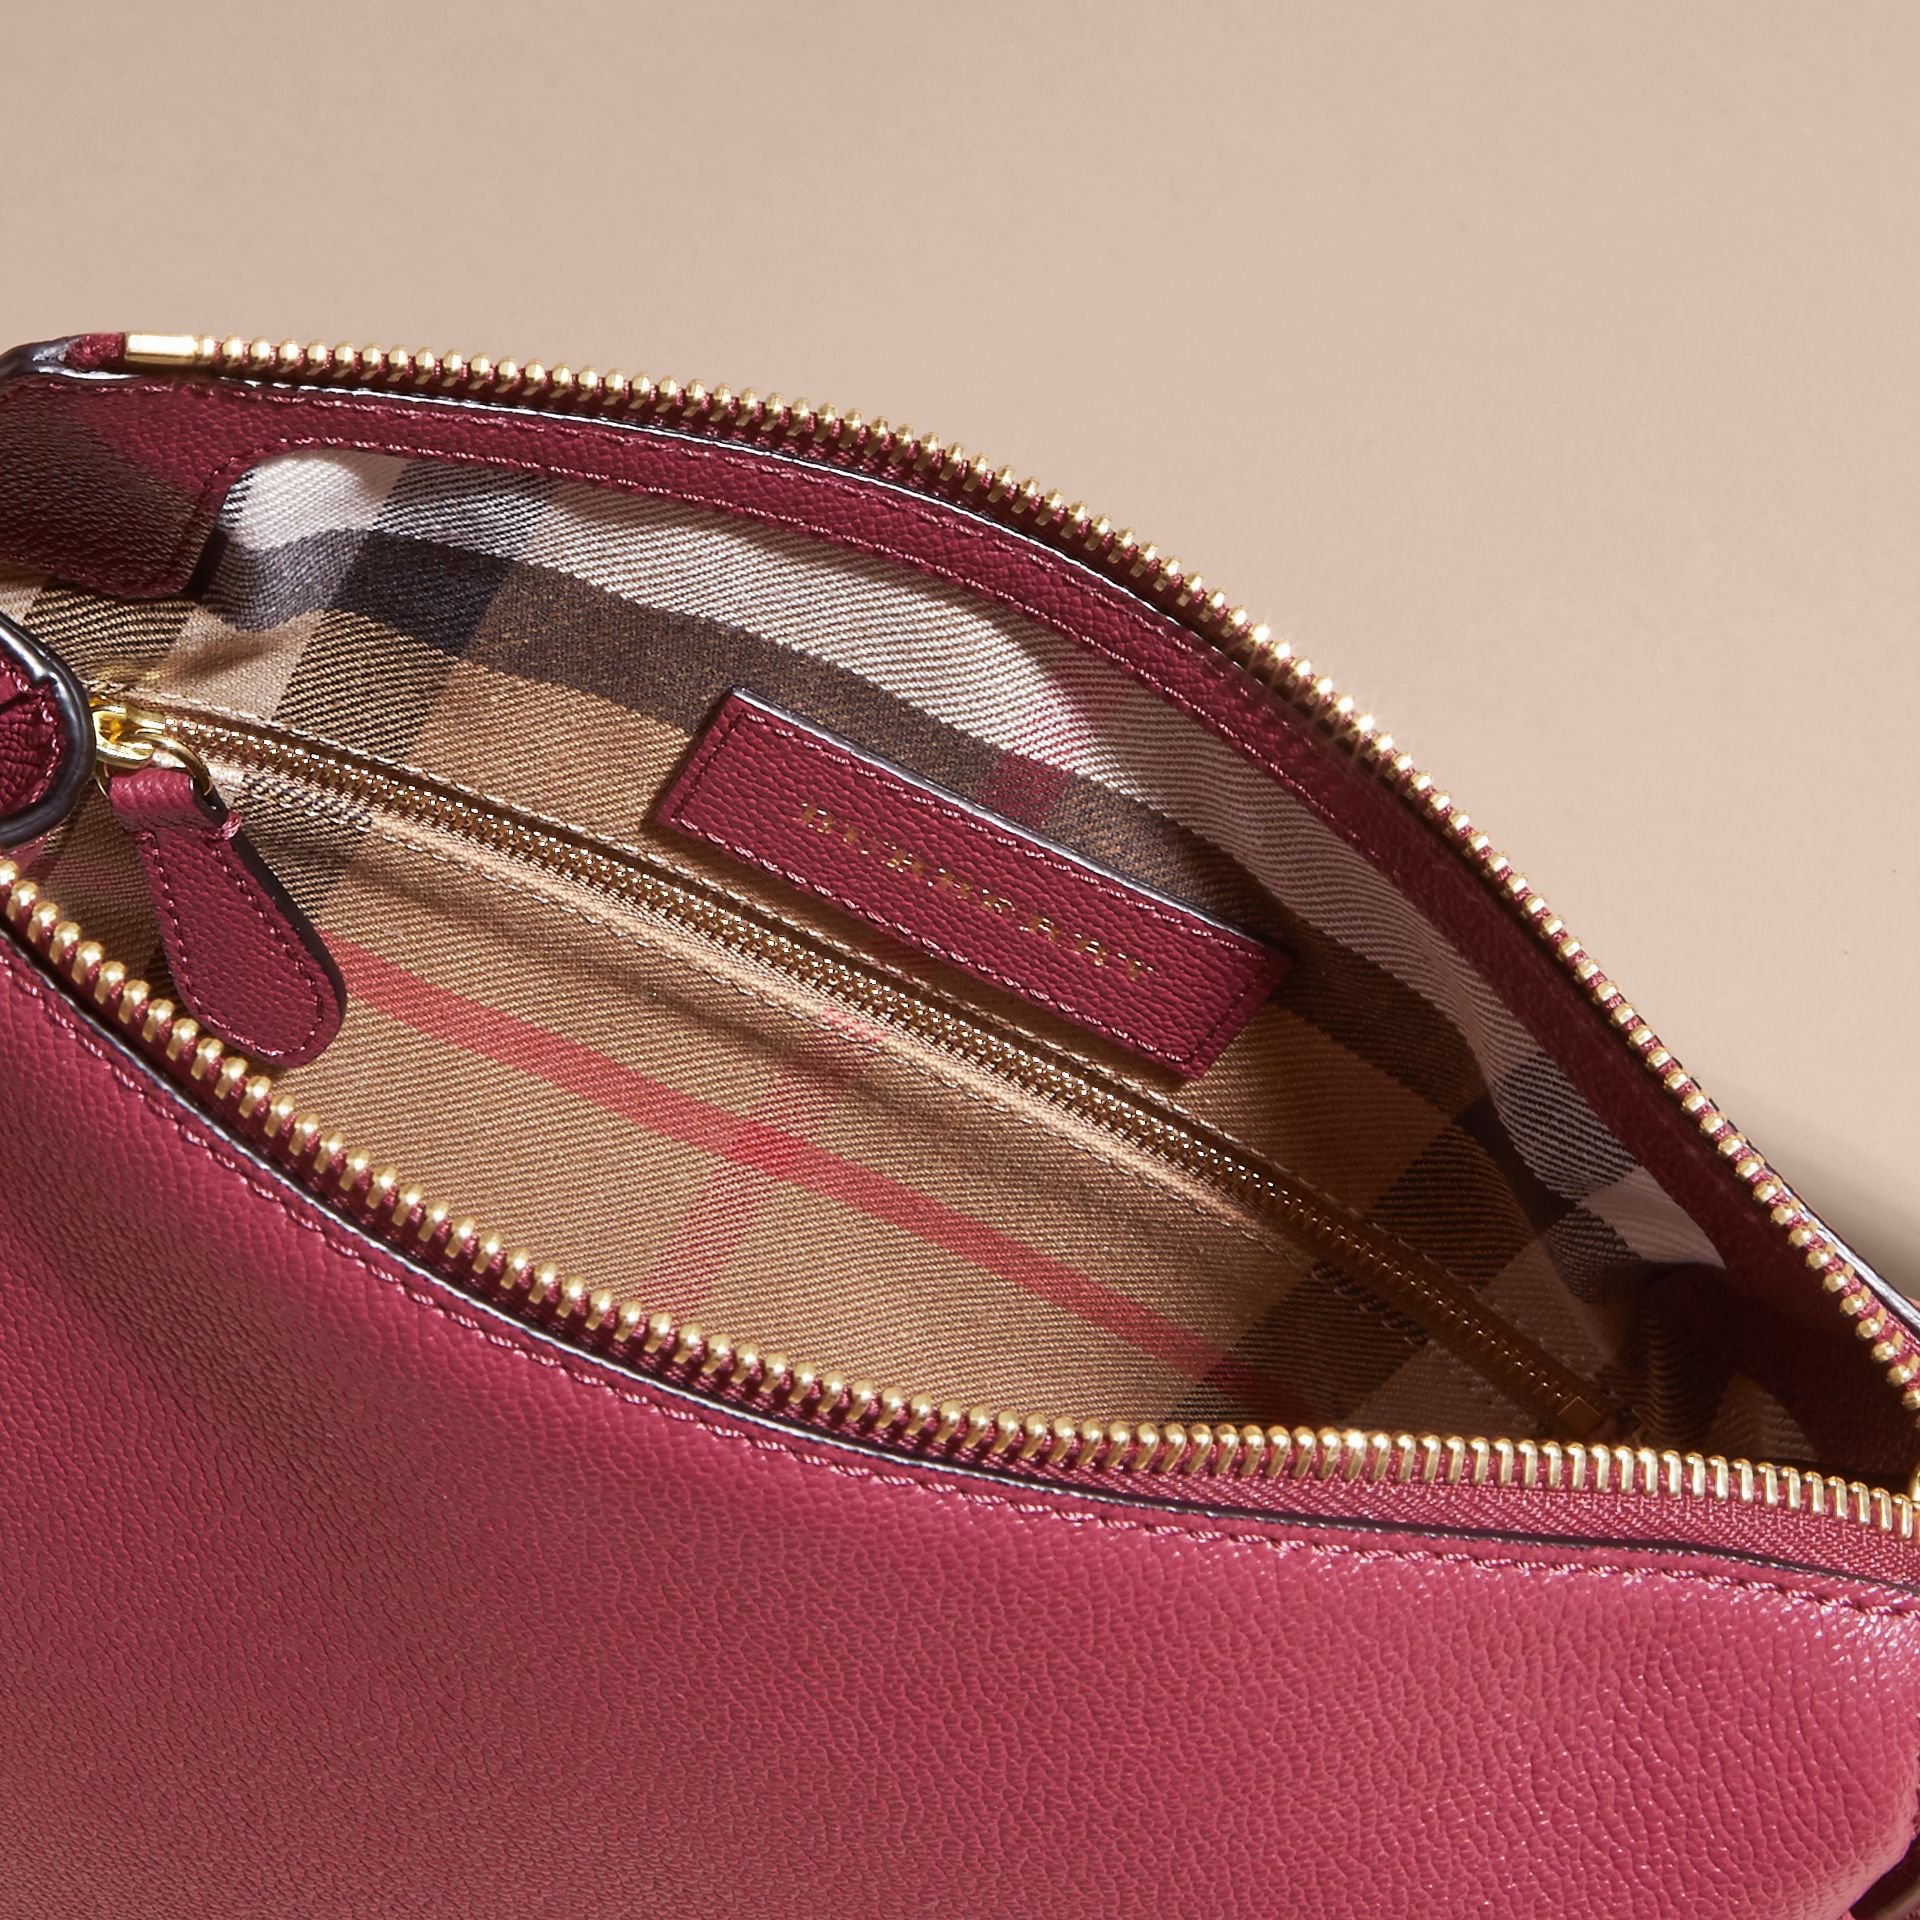 Buckle Detail Leather Crossbody Bag in Dark Plum - gallery image 4